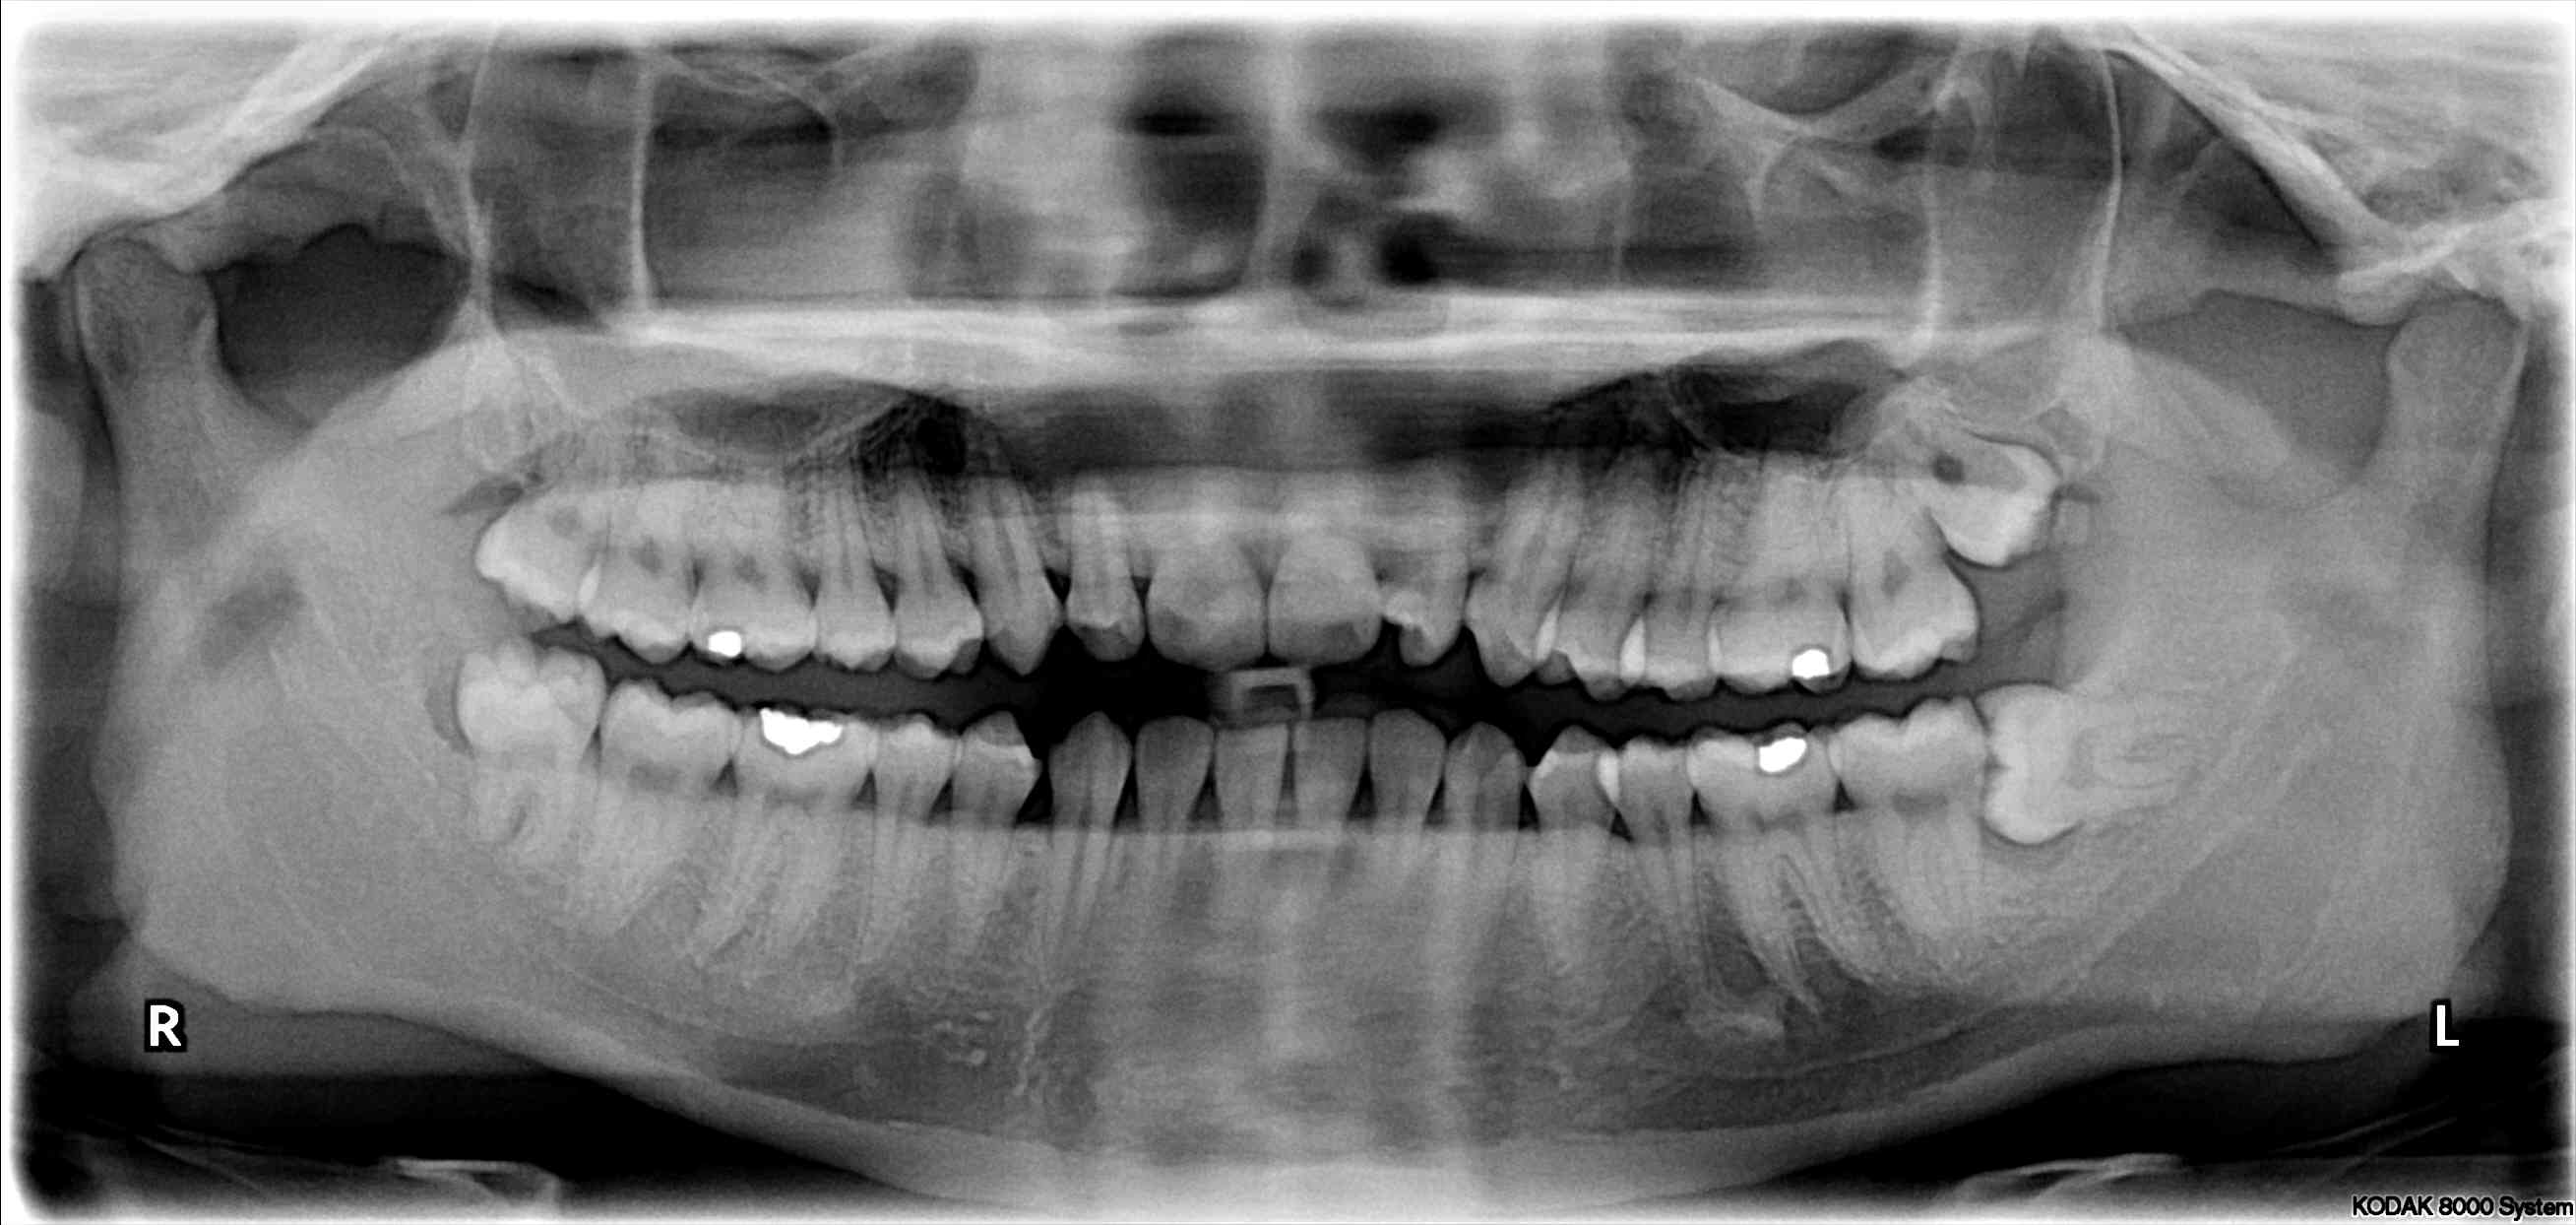 Impacted Wisdom Teeth Can Crowd Your Smile